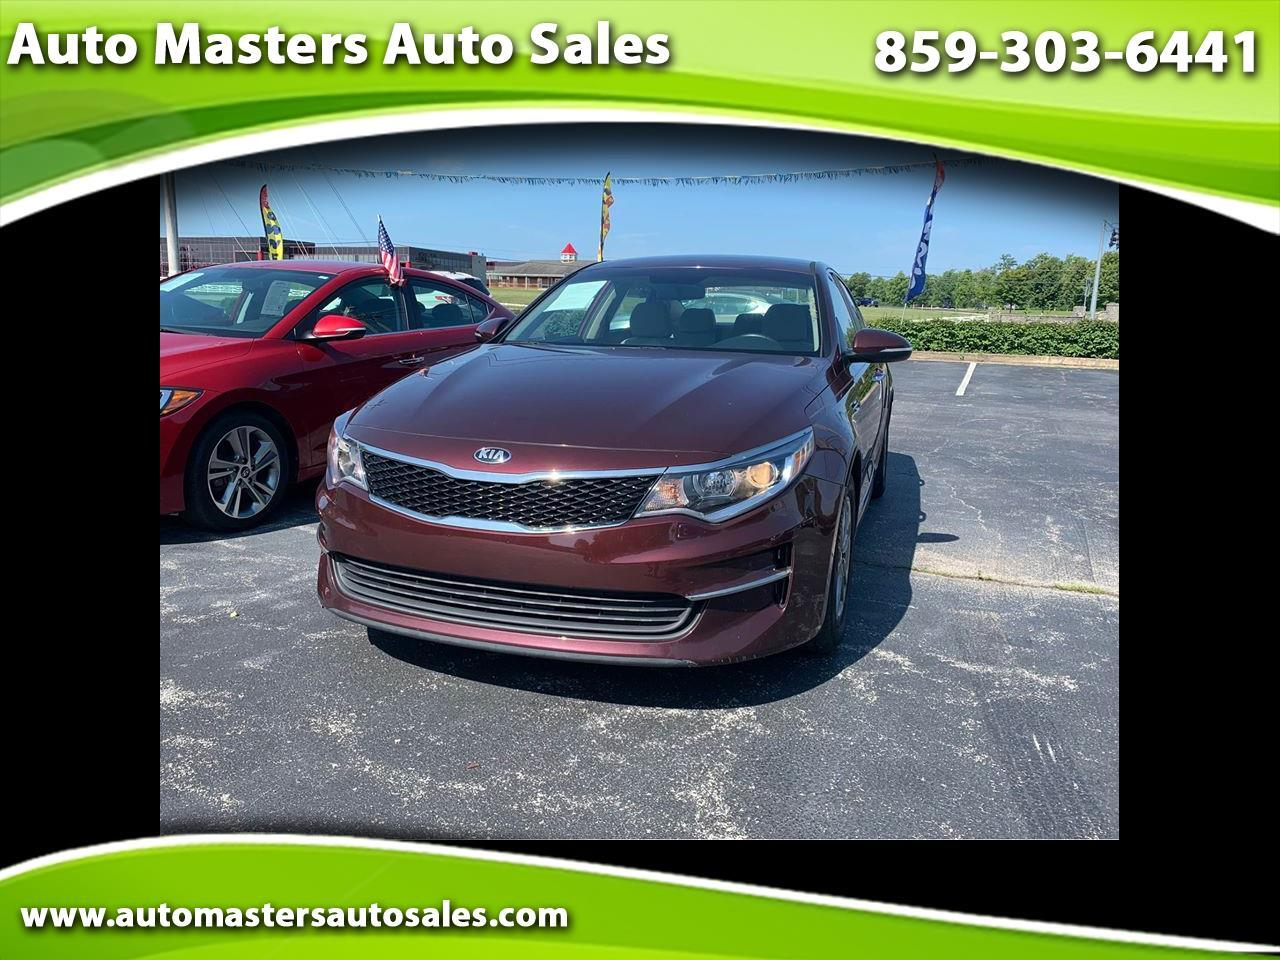 Kia Optima 4dr Sdn LX Turbo 2016